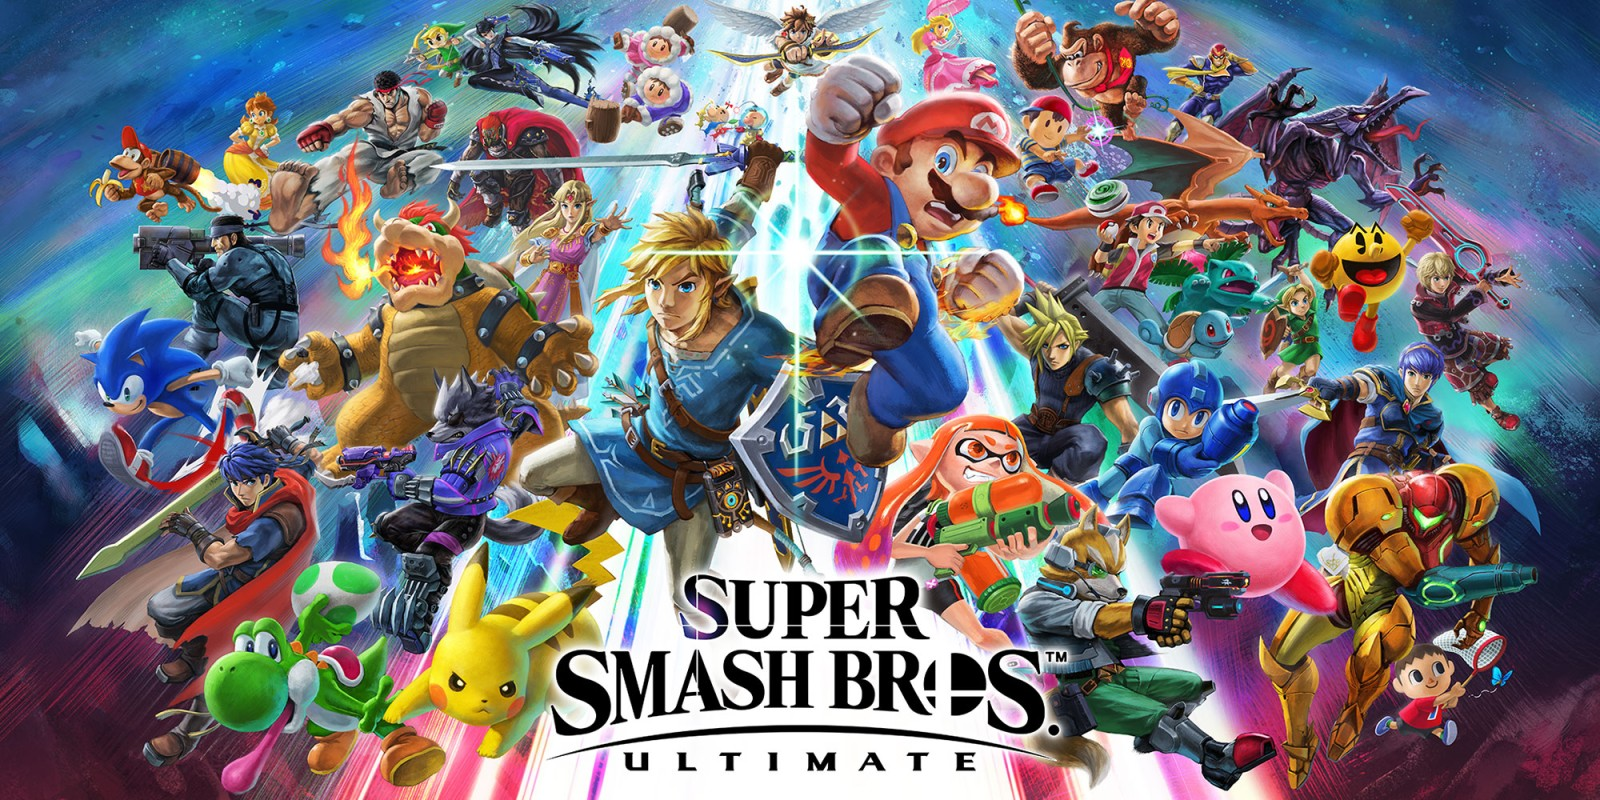 Owner Of Smash Ultimate Upcoming Challenger 4 DLC Is Leaked On Nintendo Website – Gives A Good Idea Of Who The New Fighter Might Be